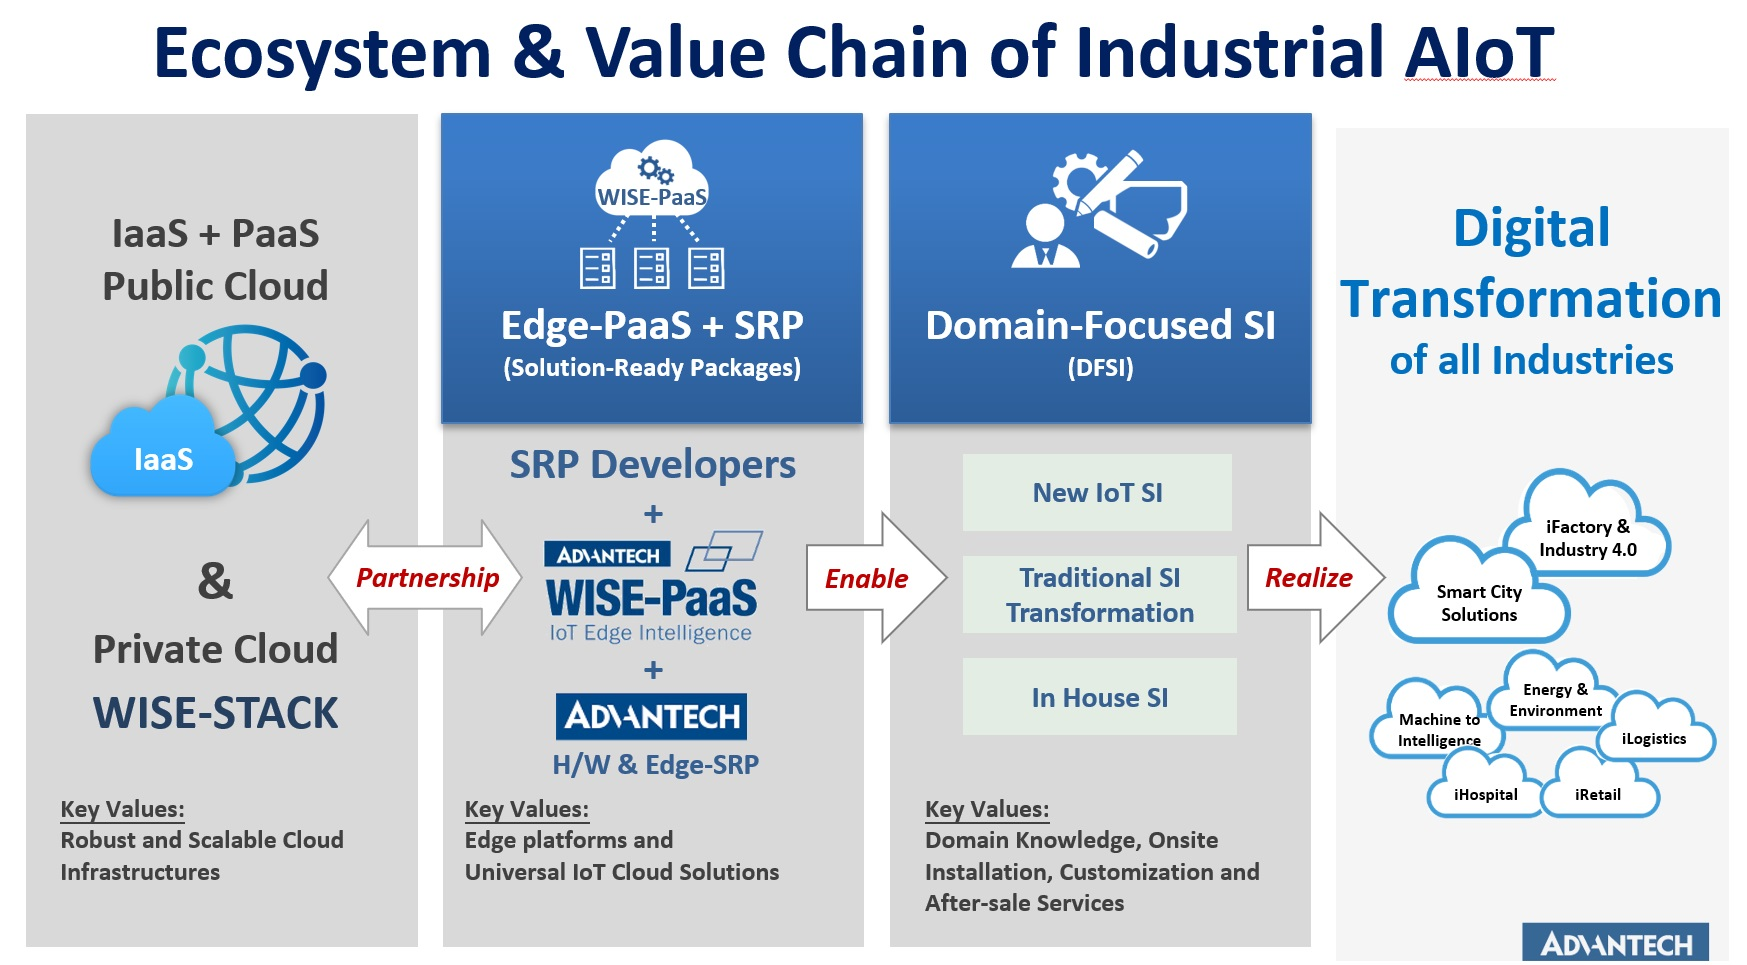 wisepass Ecosystem & Value Chain of Industrial AIoT